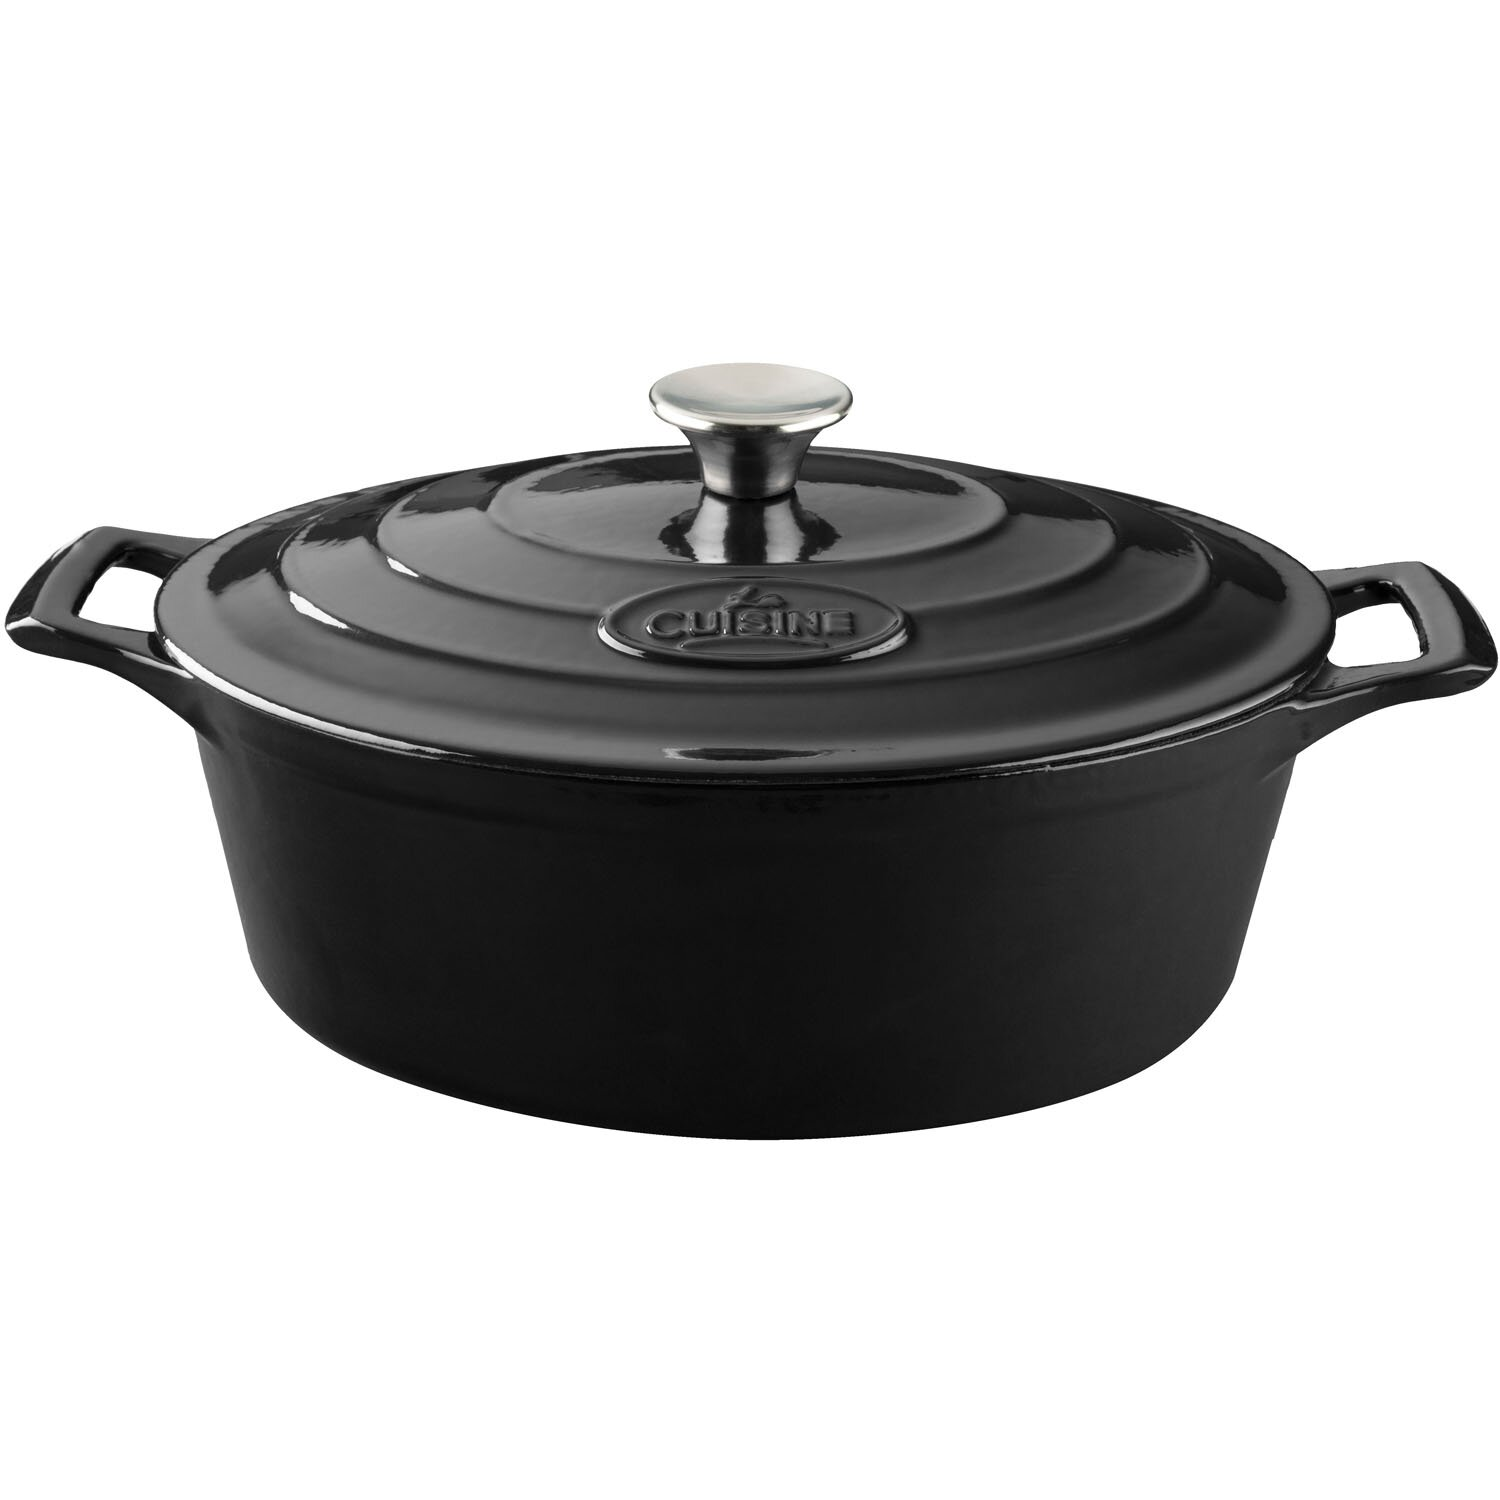 La cuisine oval casserole reviews wayfair for Art and cuisine cookware